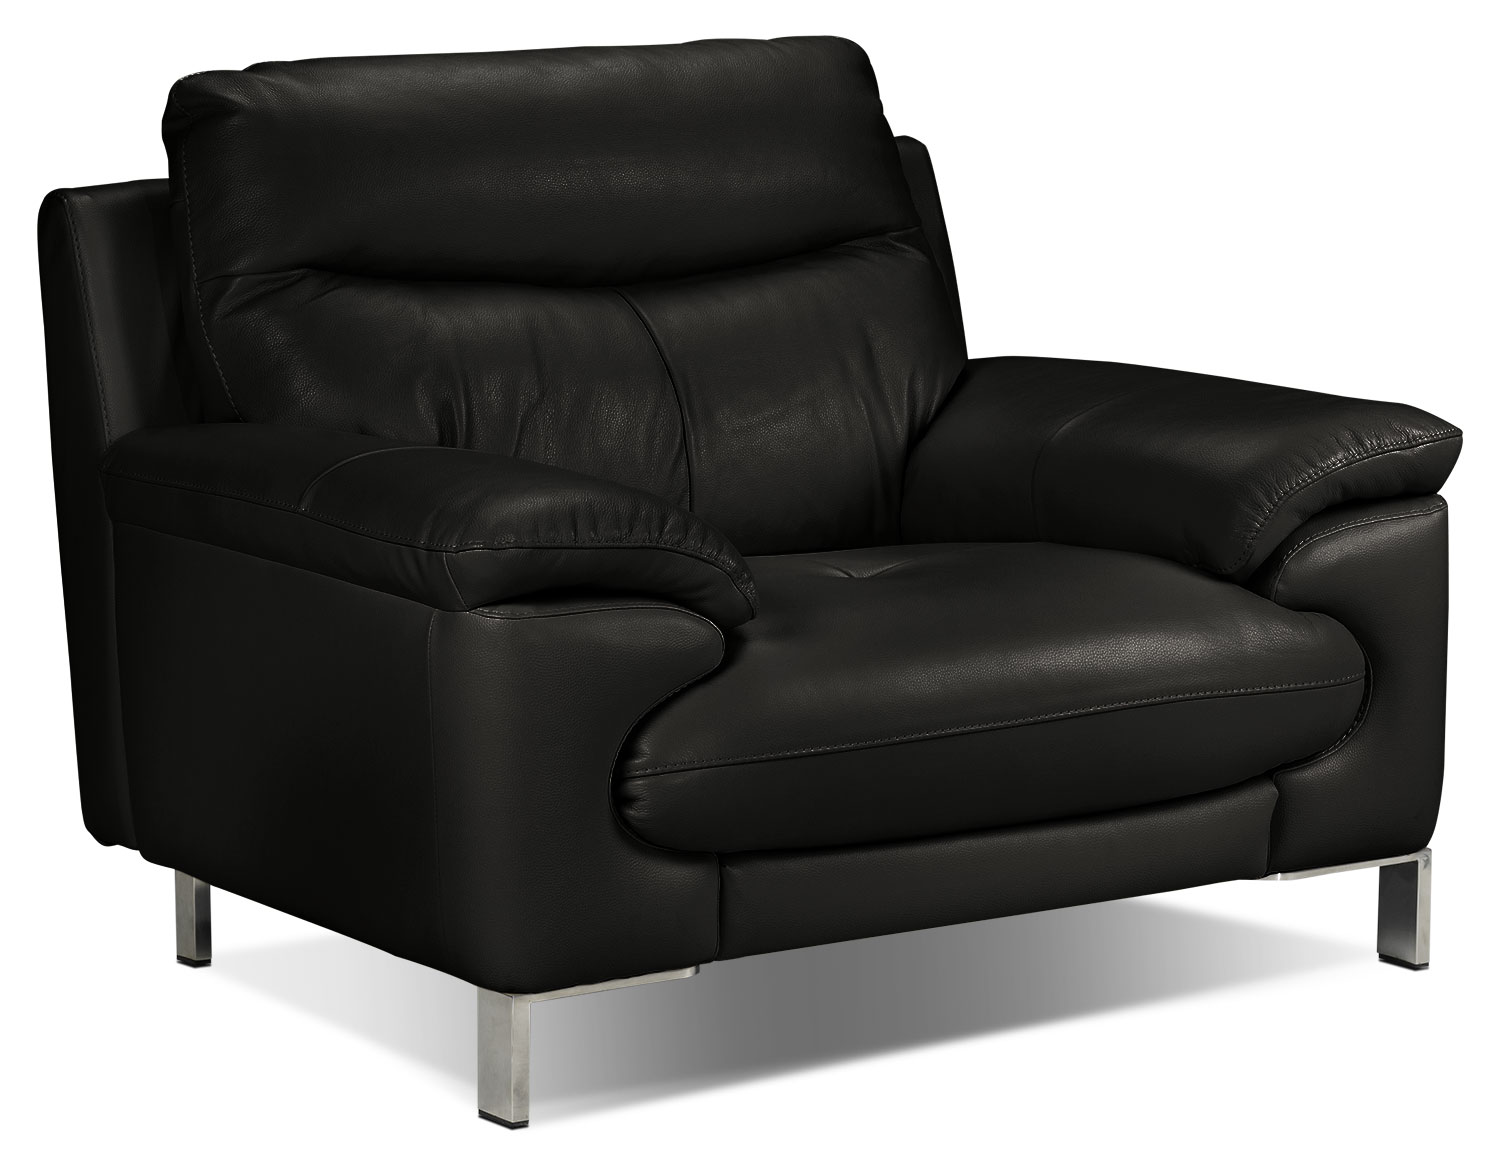 Anika Chair - Black